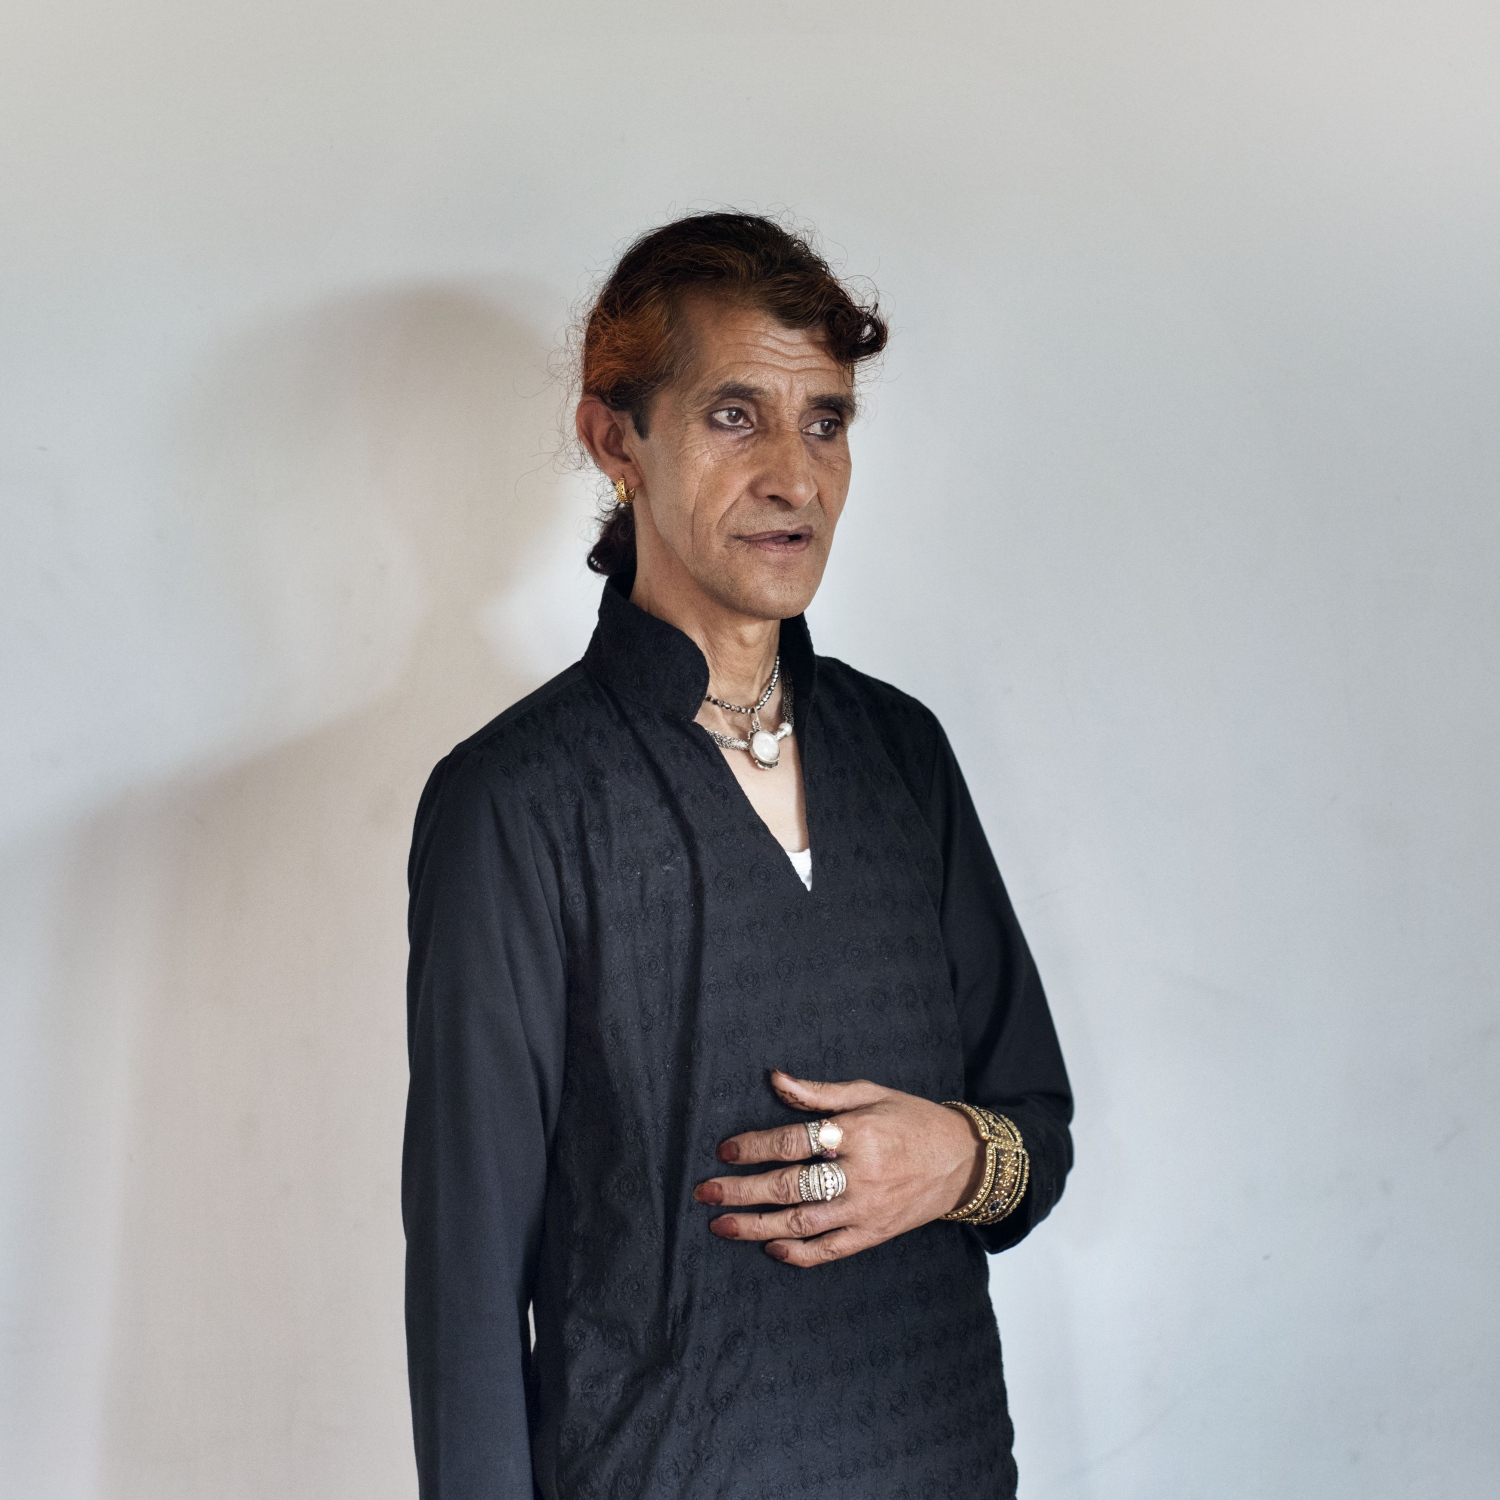 Muskaan, 45 years old, from Srinagar. Despite facing daily harassment and discrimination, Muskaan love to wear girl dress and make up. She is working as community worker in NGO. By the age of 6 she became aware about her gender identity, and nowadays lives on rent with other community member.